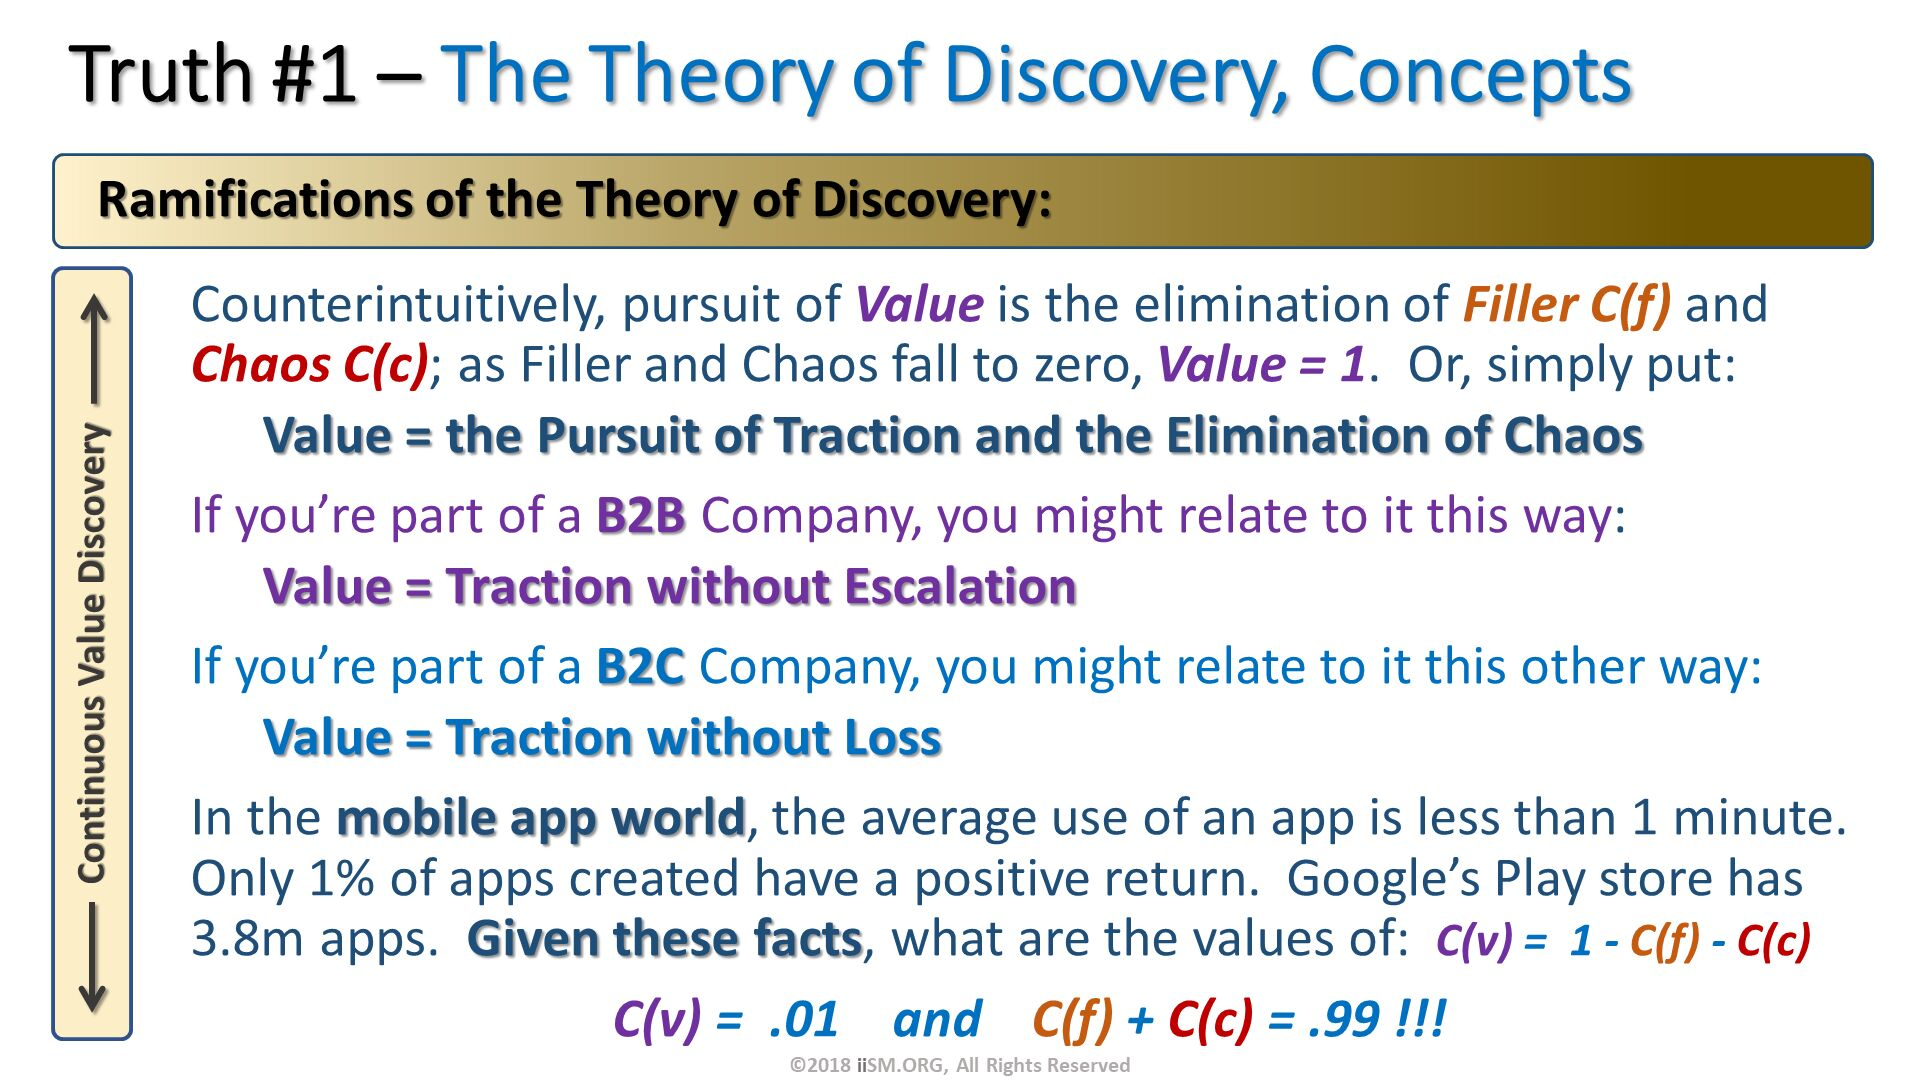 Truth #1 – The Theory of Discovery, Concepts. Counterintuitively, pursuit of Value is the elimination of Filler C(f) and Chaos C(c); as Filler and Chaos fall to zero, Value = 1.  Or, simply put:   Value = the Pursuit of Traction and the Elimination of Chaos If you're part of a B2B Company, you might relate to it this way: Value = Traction without Escalation If you're part of a B2C Company, you might relate to it this other way: Value = Traction without Loss In the mobile app world, the average use of an app is less than 1 minute.  Only 1% of apps created have a positive return.  Google's Play store has 3.8m apps.  Given these facts, what are the values of:  C(v) =  1 - C(f) - C(c) C(v) =  .01    and    C(f) + C(c) = .99 !!! .   Ramifications of the Theory of Discovery: . ©2018 iiSM.ORG, All Rights Reserved.